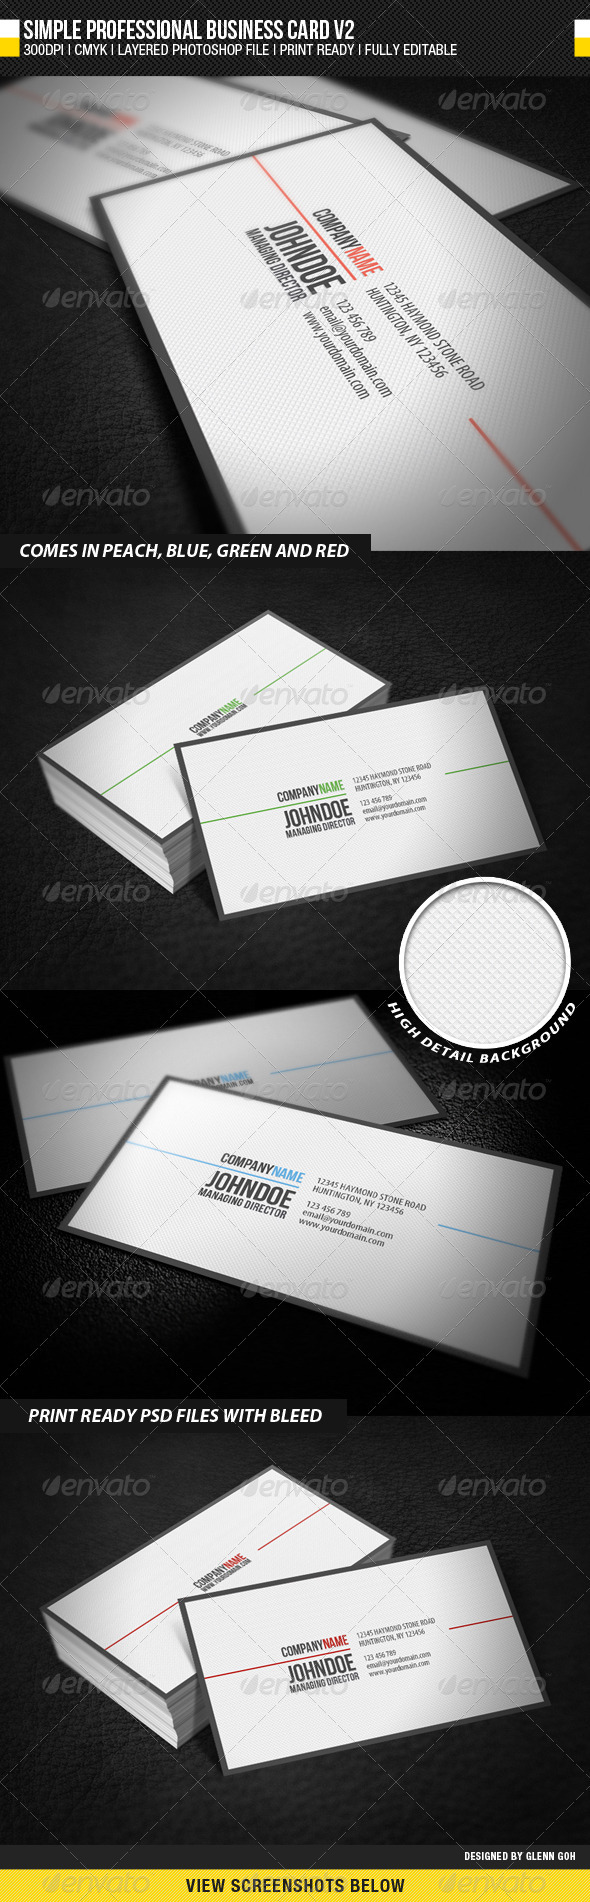 GraphicRiver Simple Professional Business Card V2 1236886